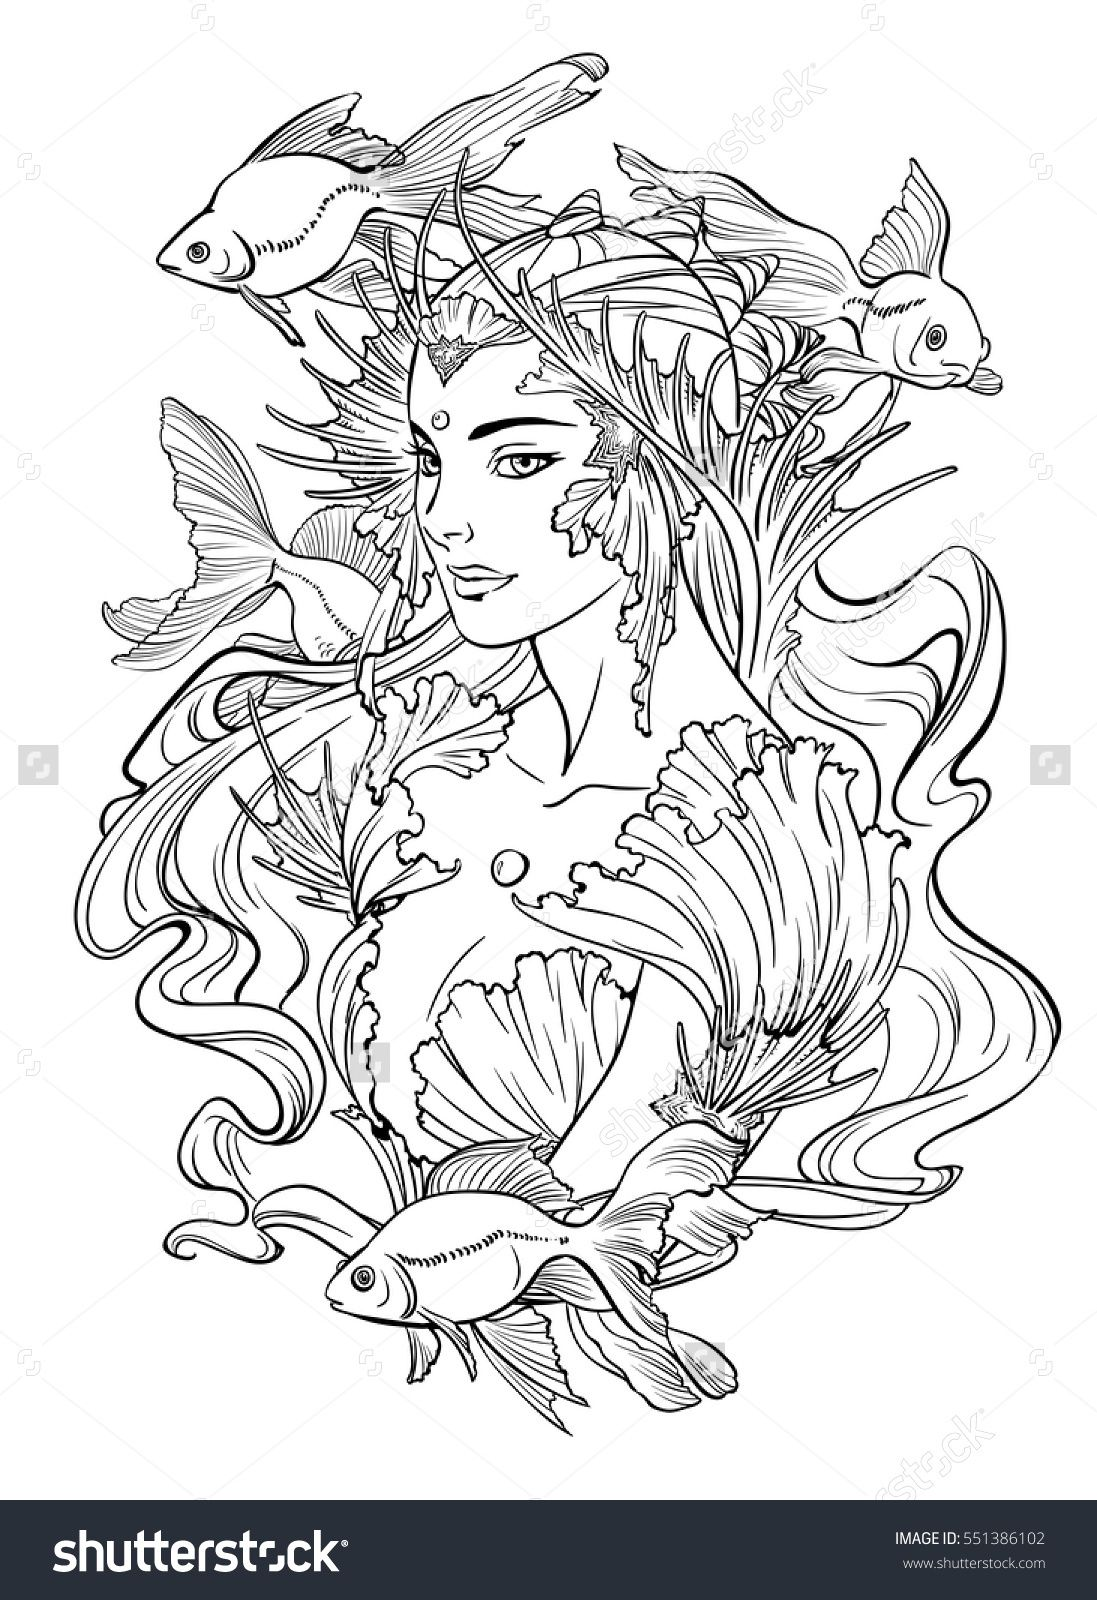 free pirate mermaid coloring pages - photo#40